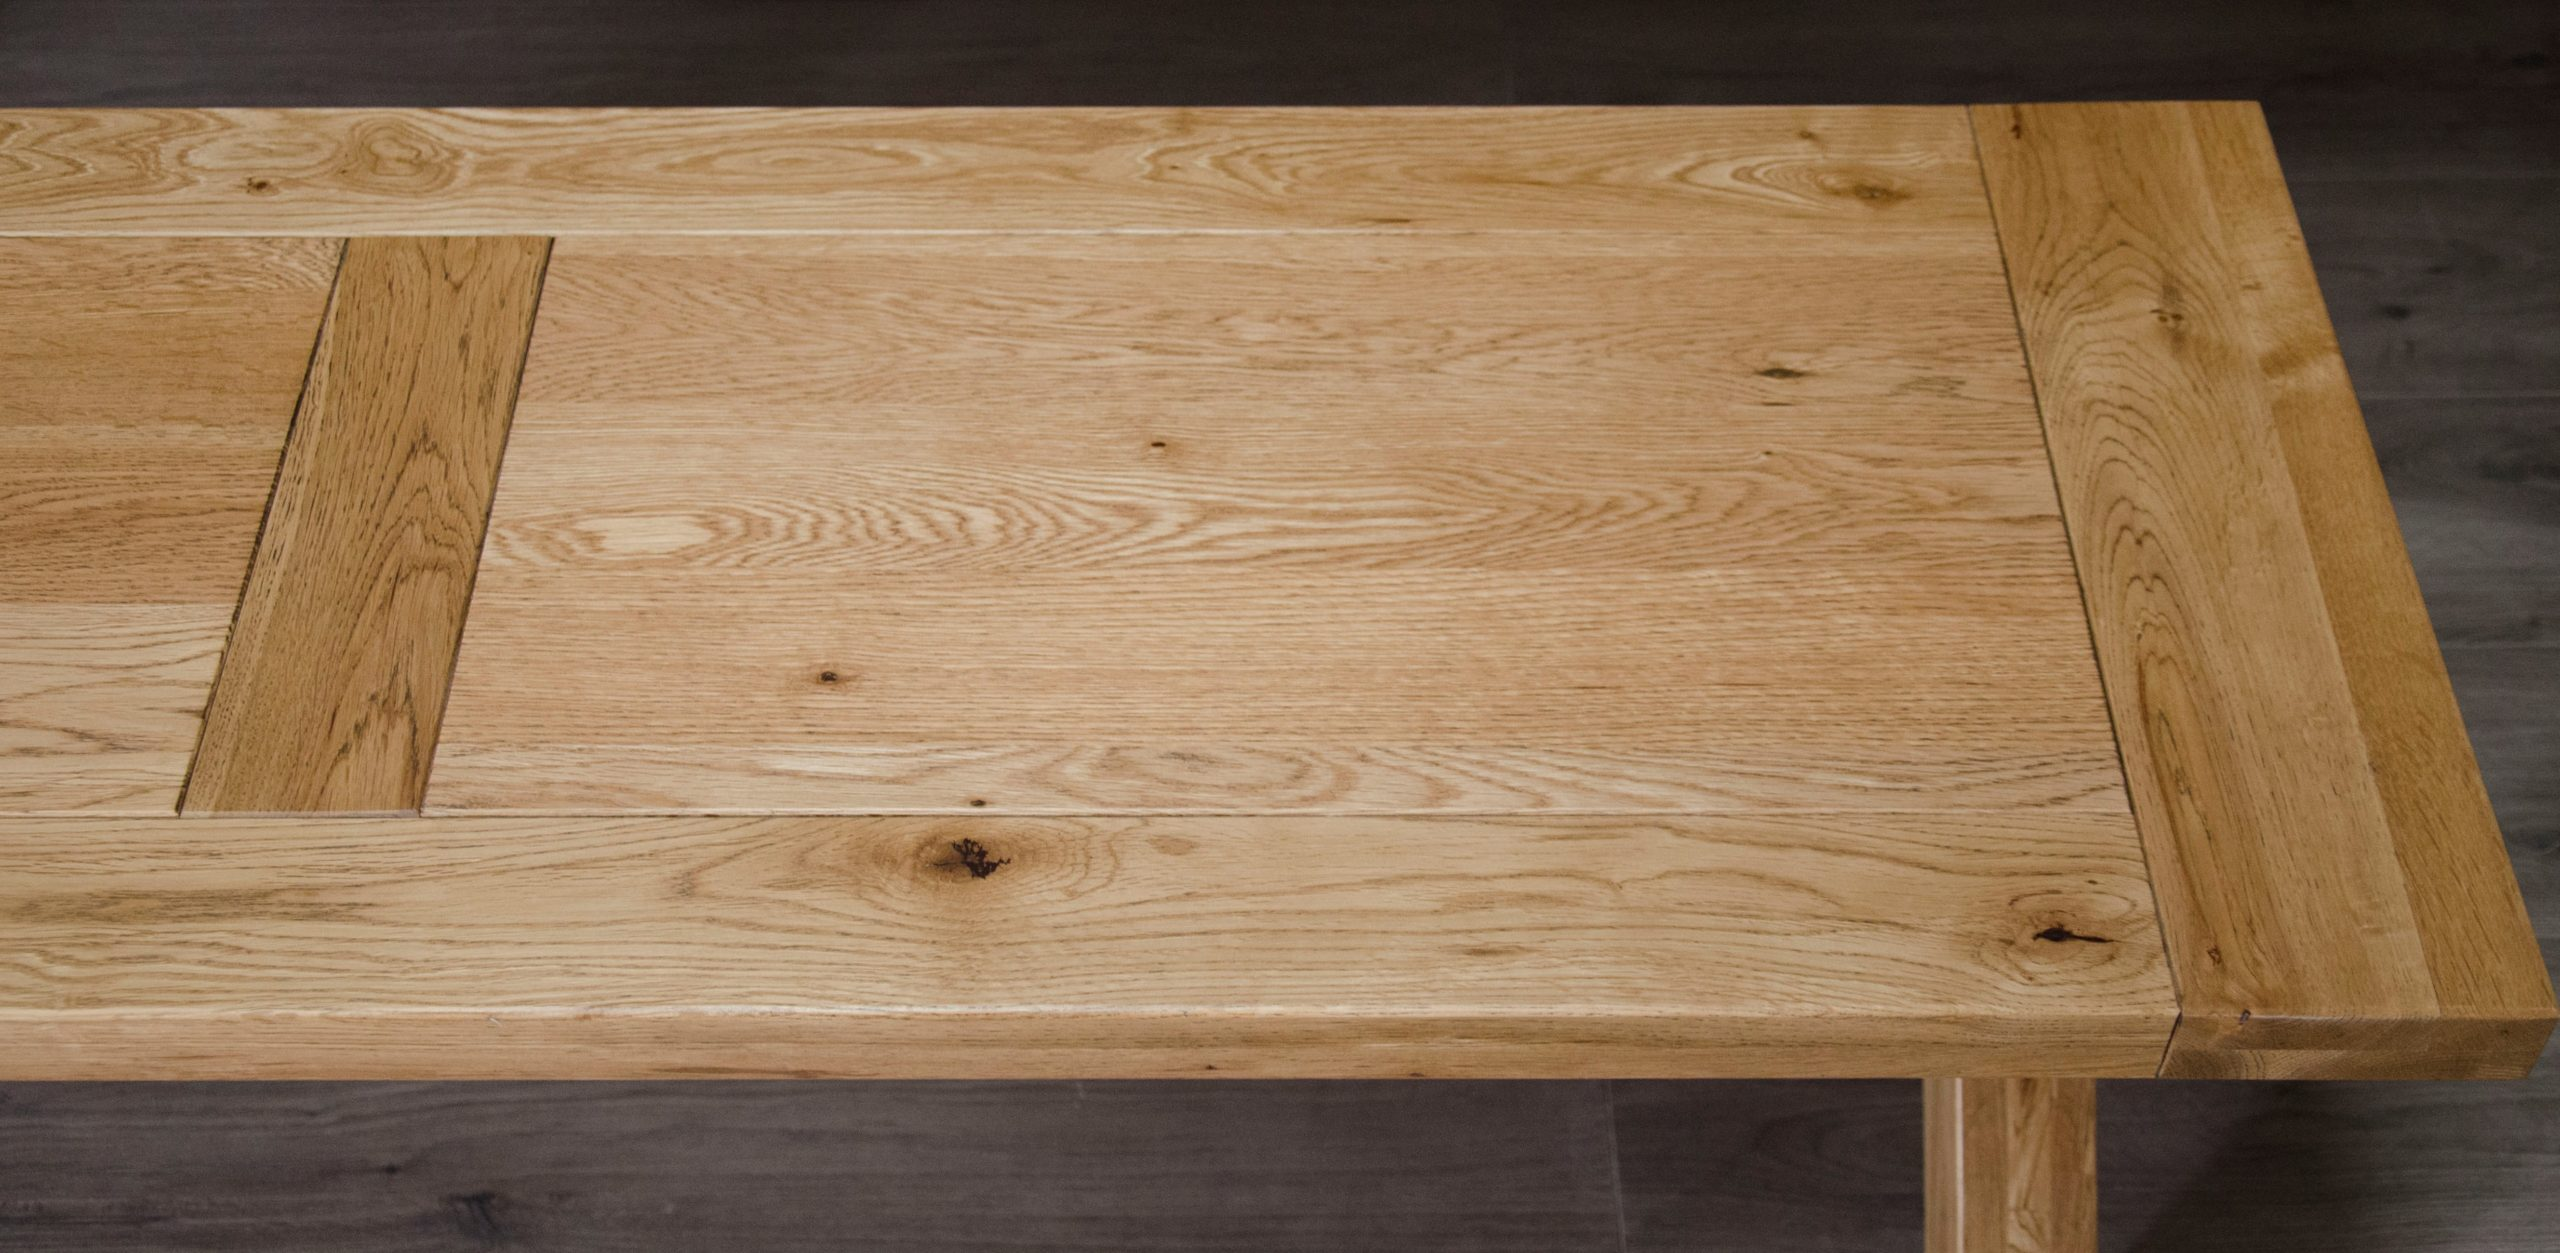 Melford solid oak bench with panelled top